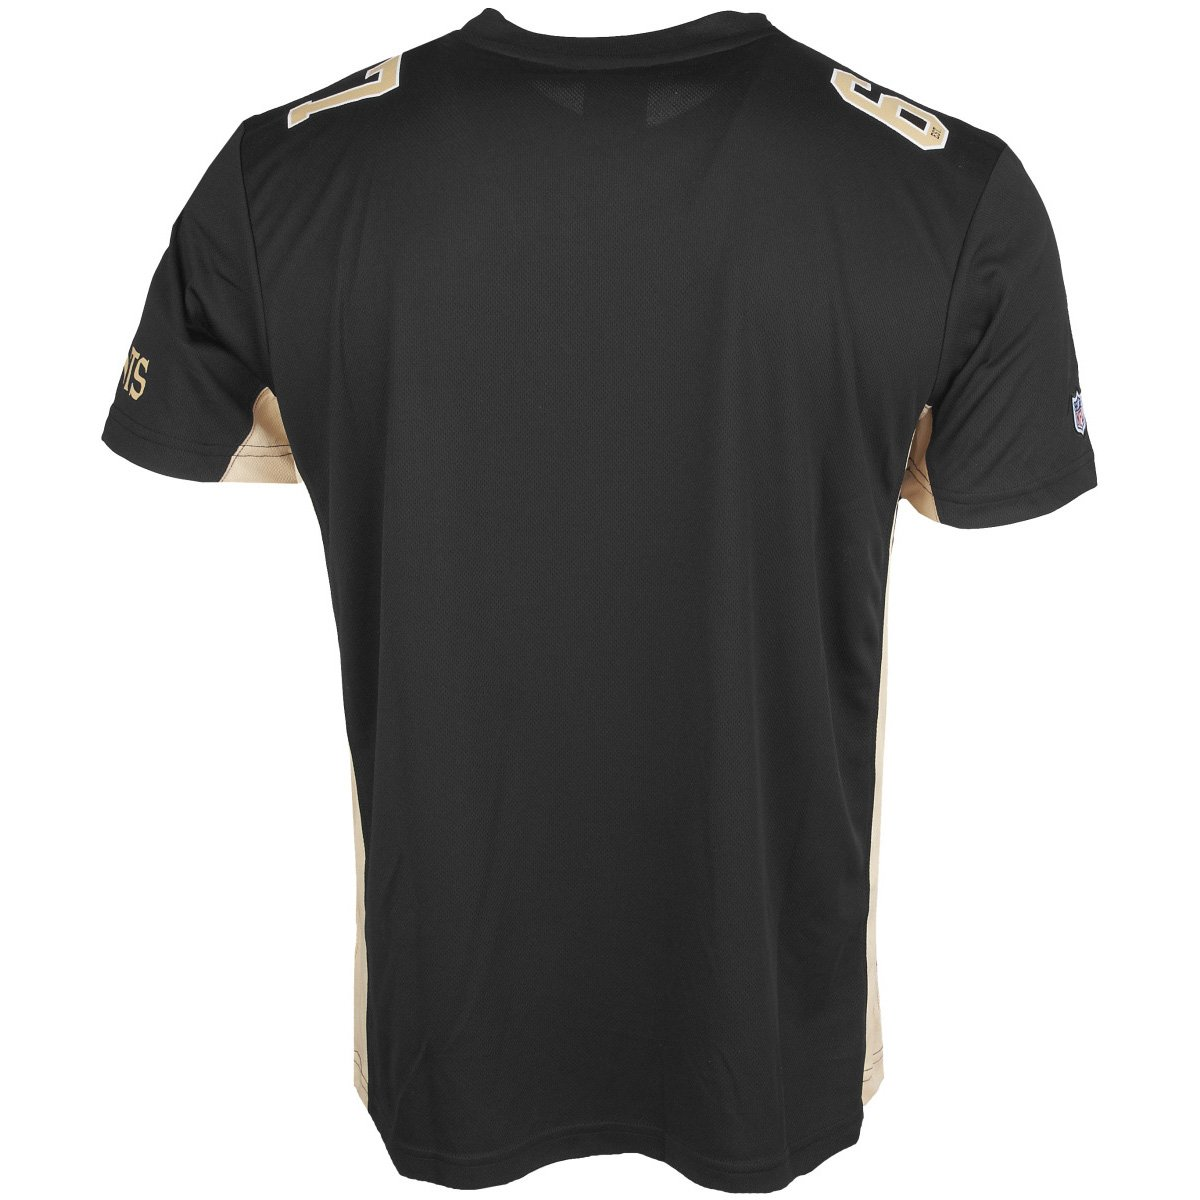 New Orleans Saints Majestic Mesh Polyester Jersey Shirt